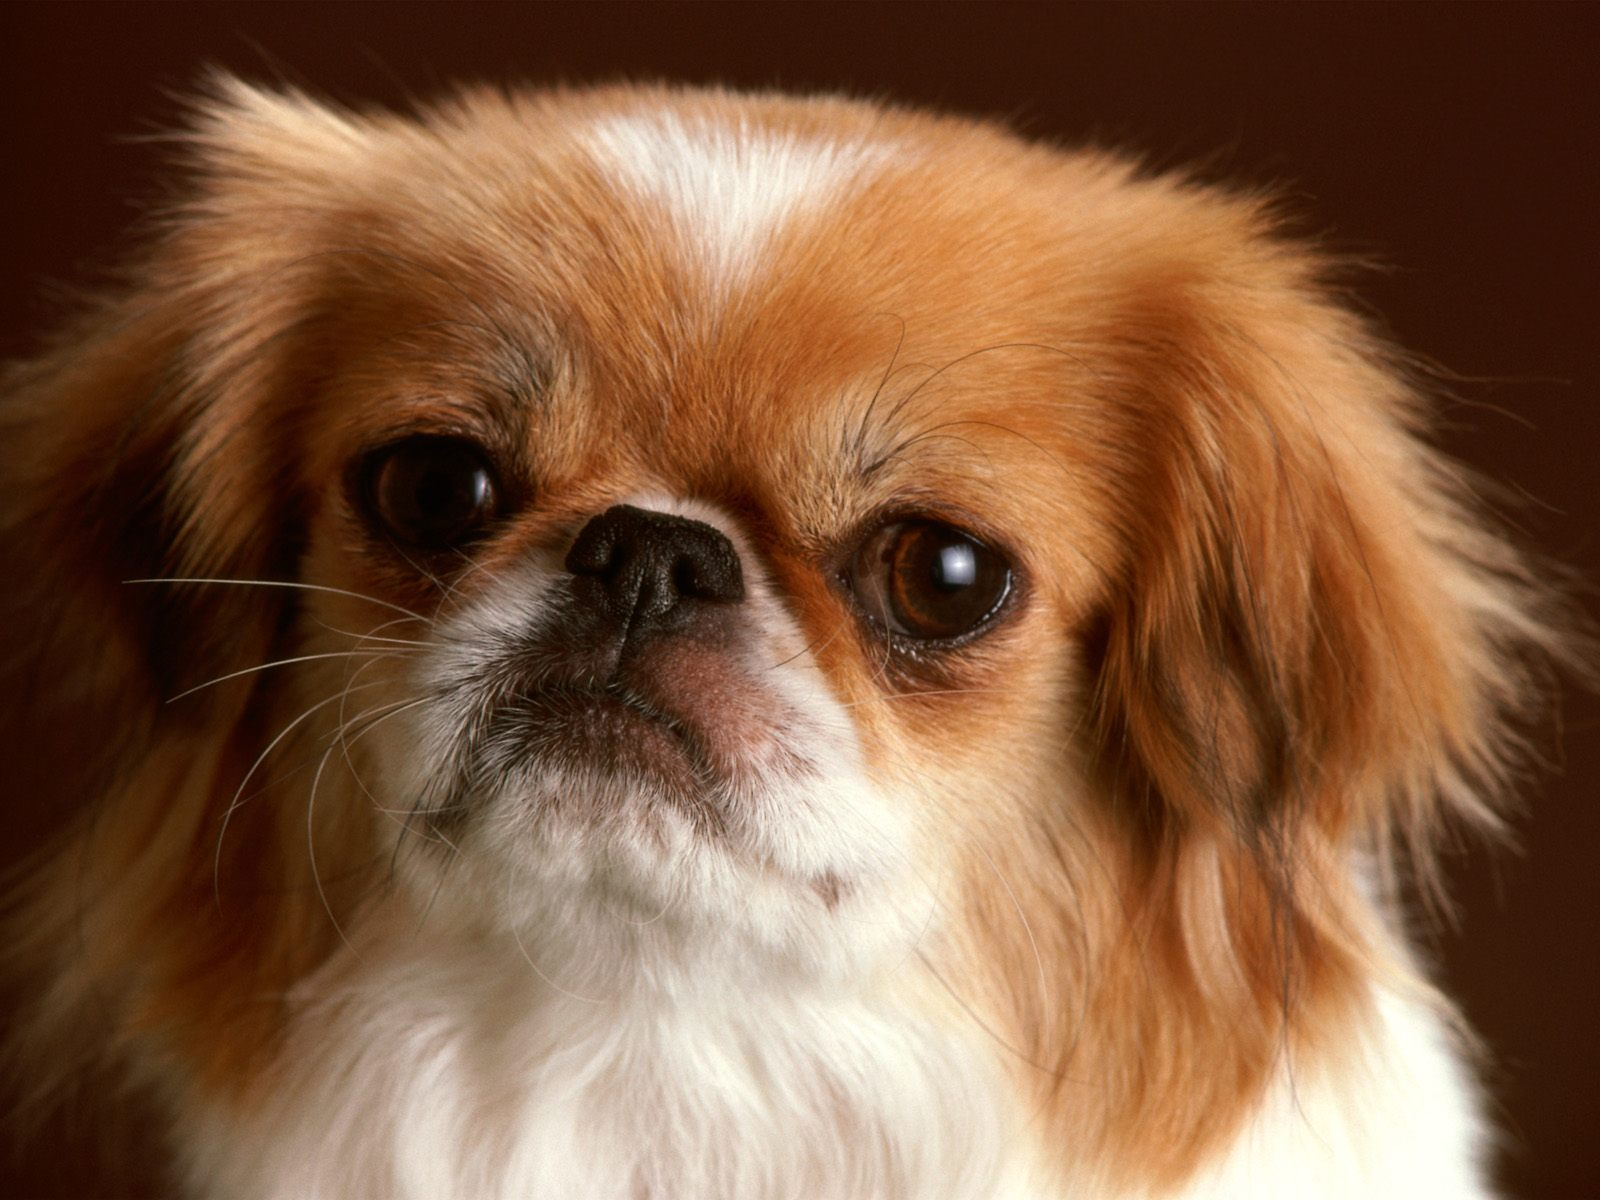 Pekingese Dogs Pictures & HD Wallpapers